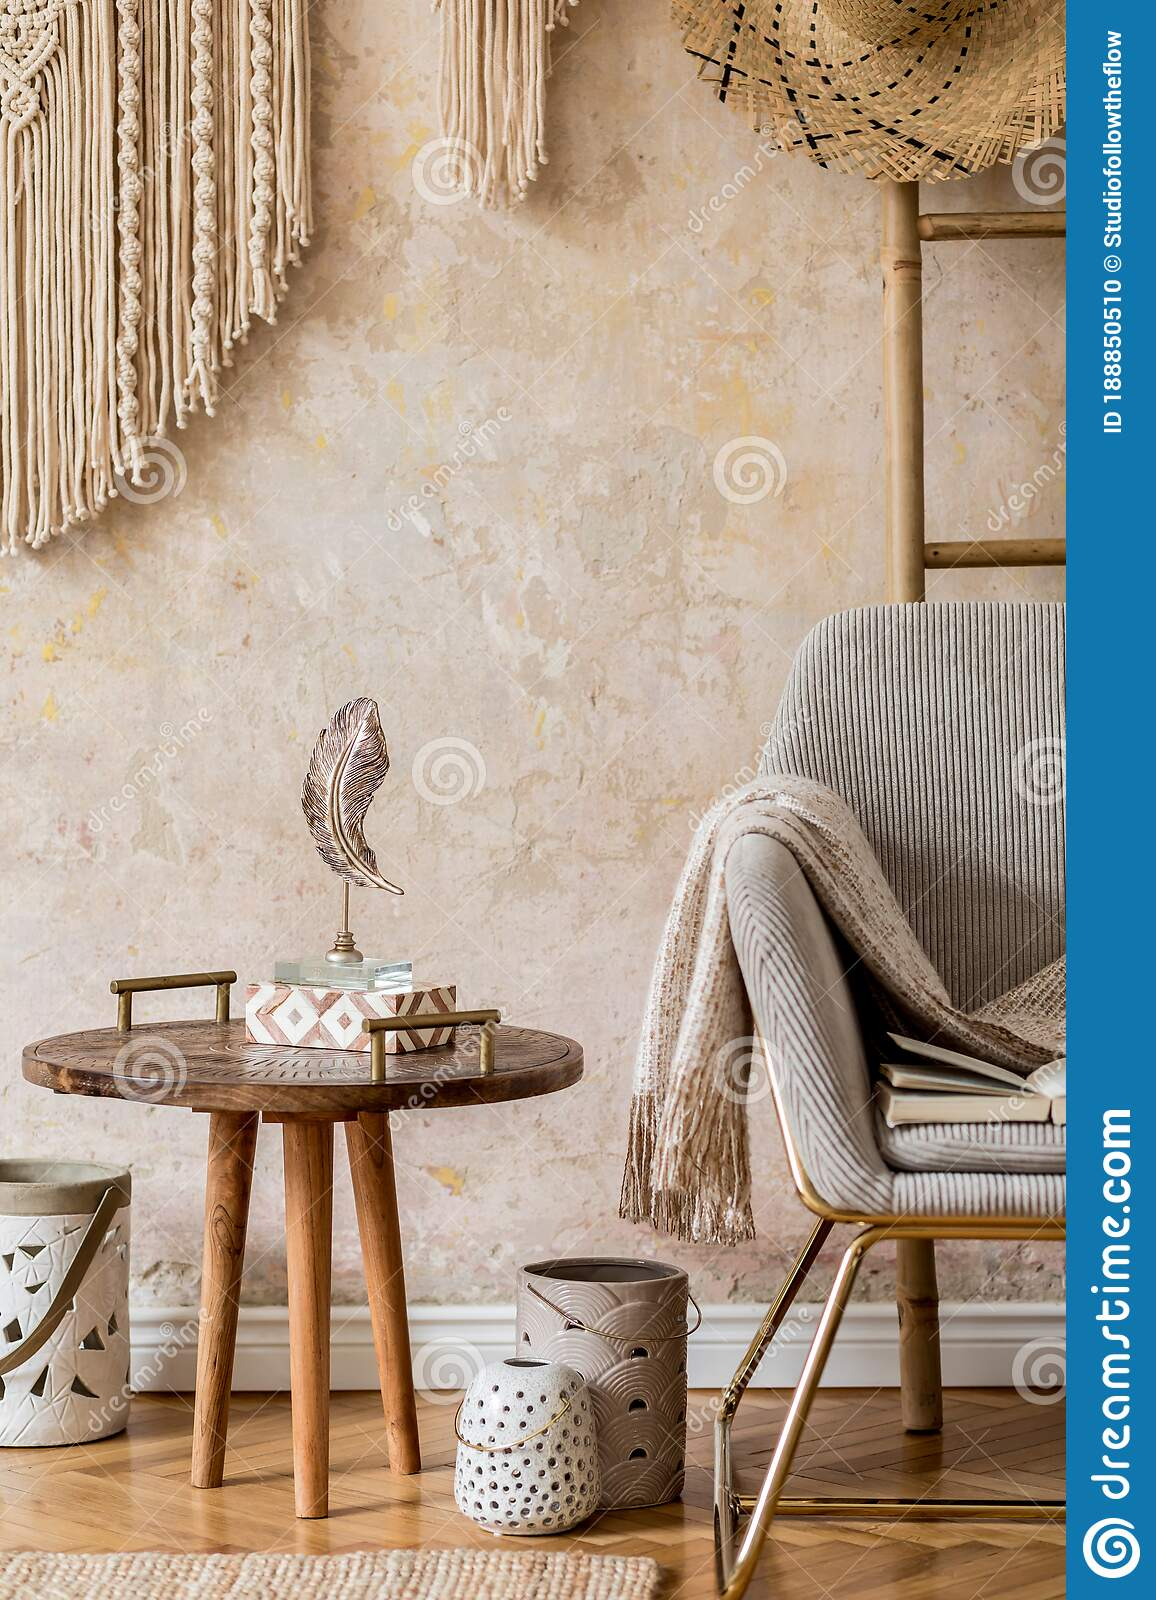 Interior Design Of Oriental Living Room With Modern Armchair Macrame Wooden Ladder Plaid Decorations And Elegant Accessories Stock Photo Image Of Chair Building 188850510